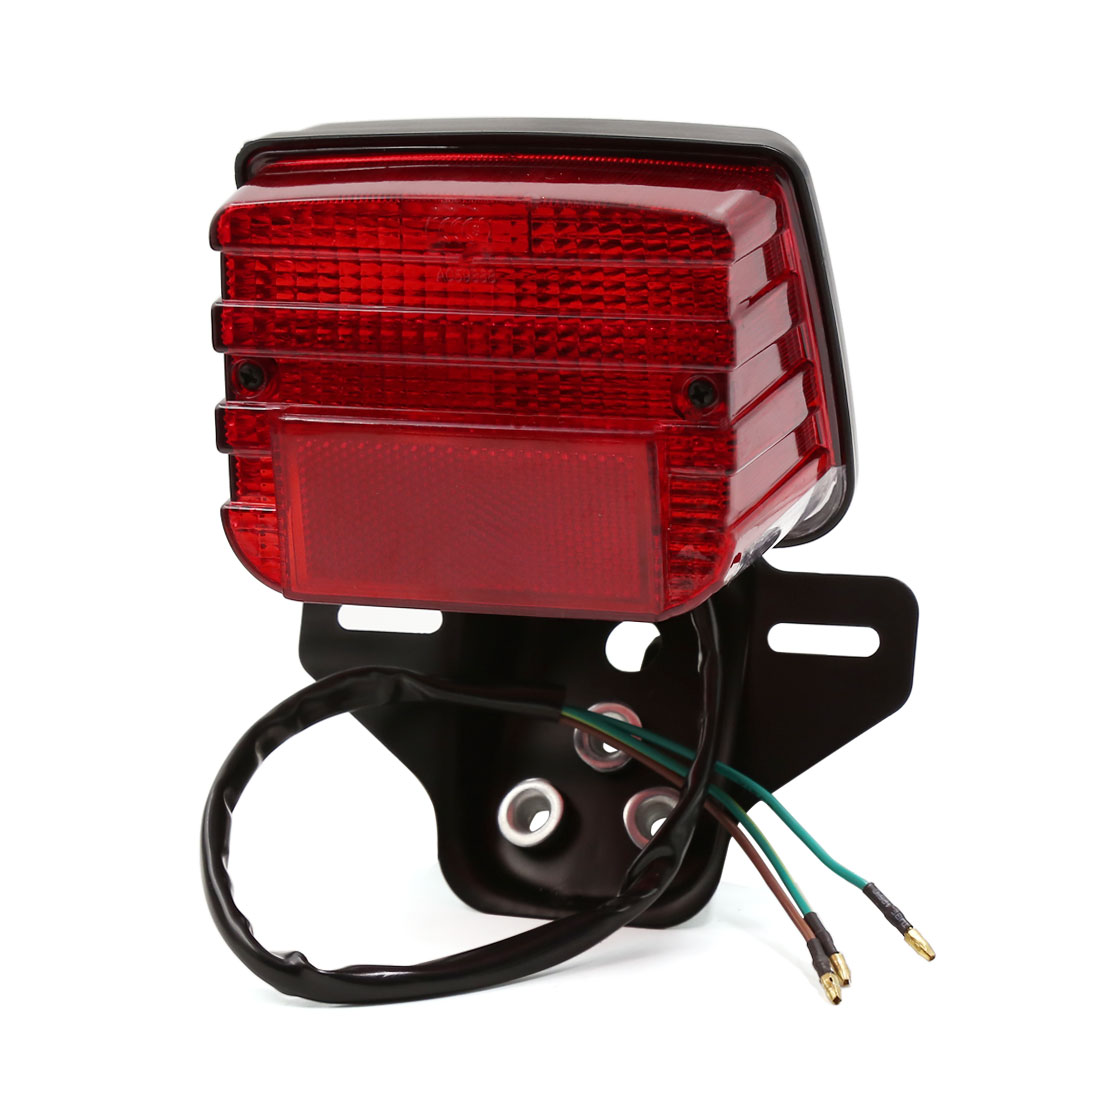 Red Brake Stop License Plate Lamp Rear Tail Light DC 12V for CG125 Motorcycle